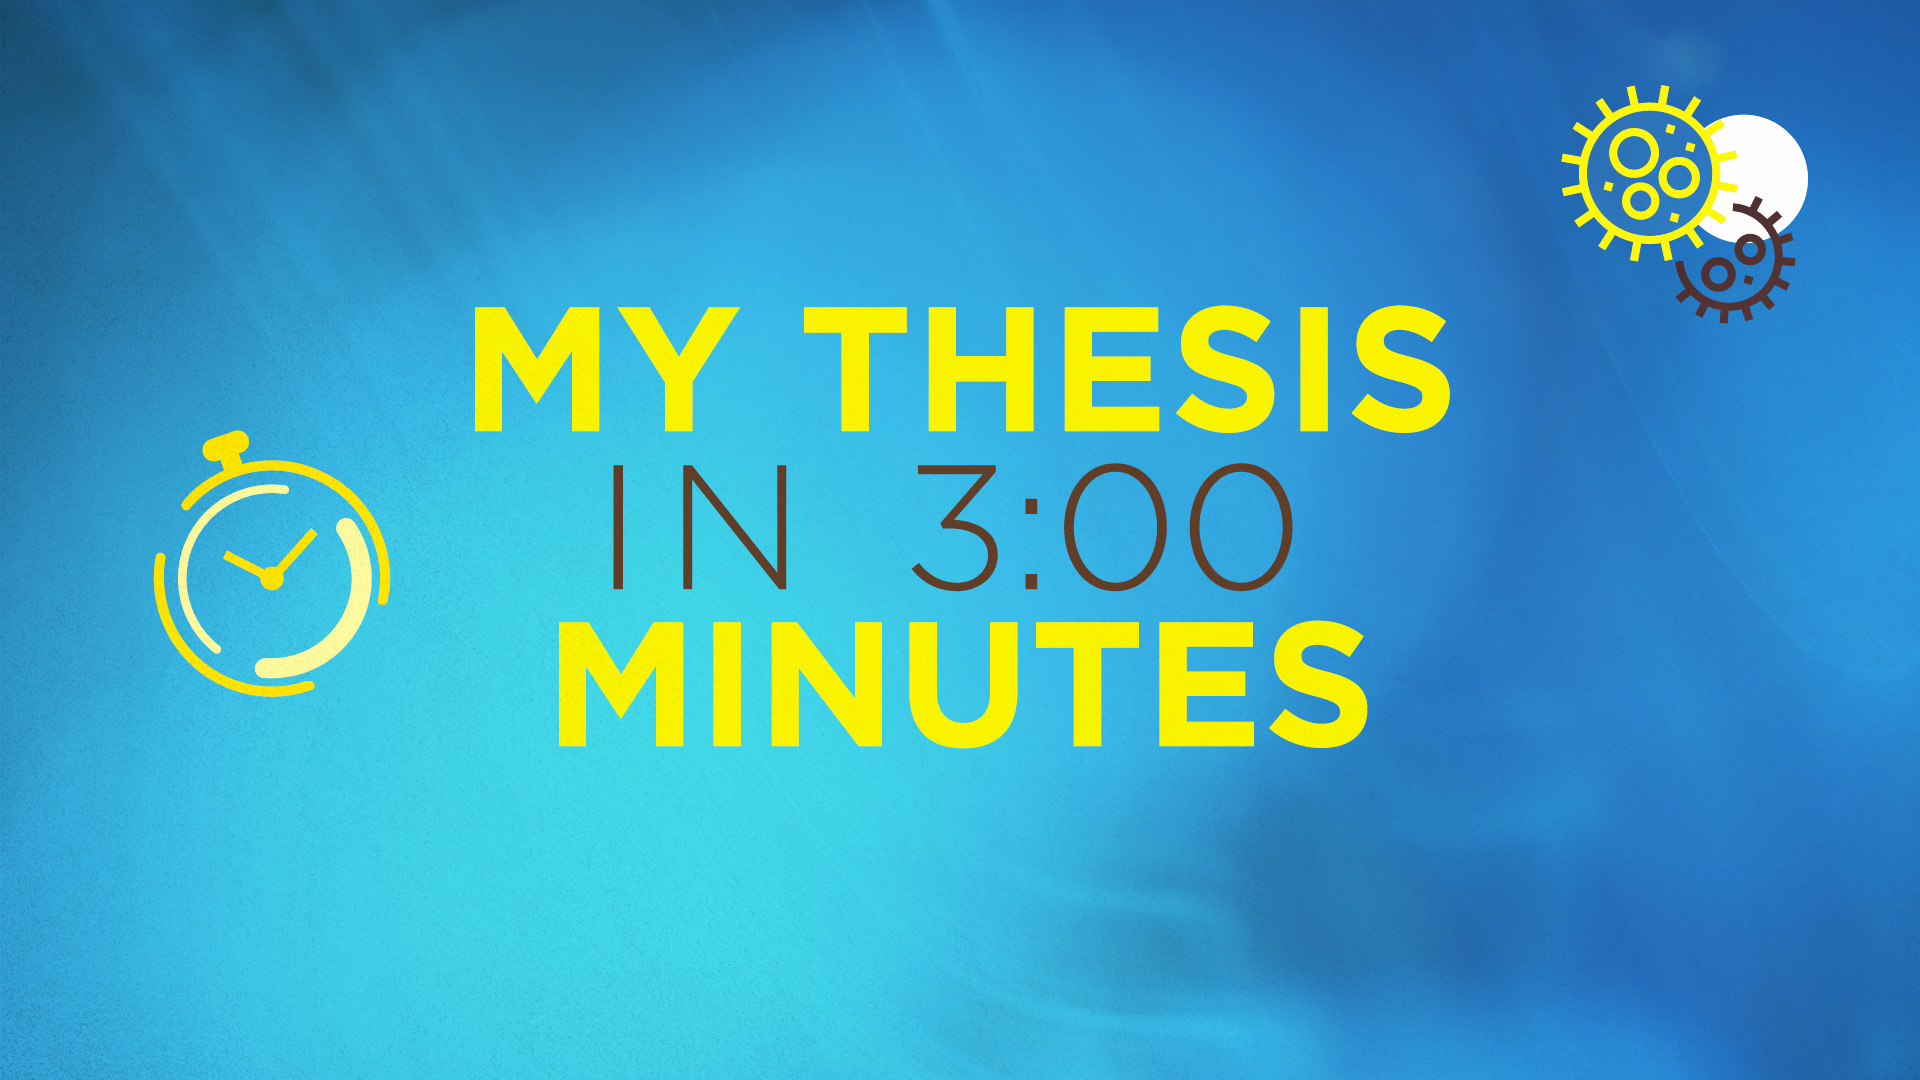 My Thesis in 3:00 Minutes